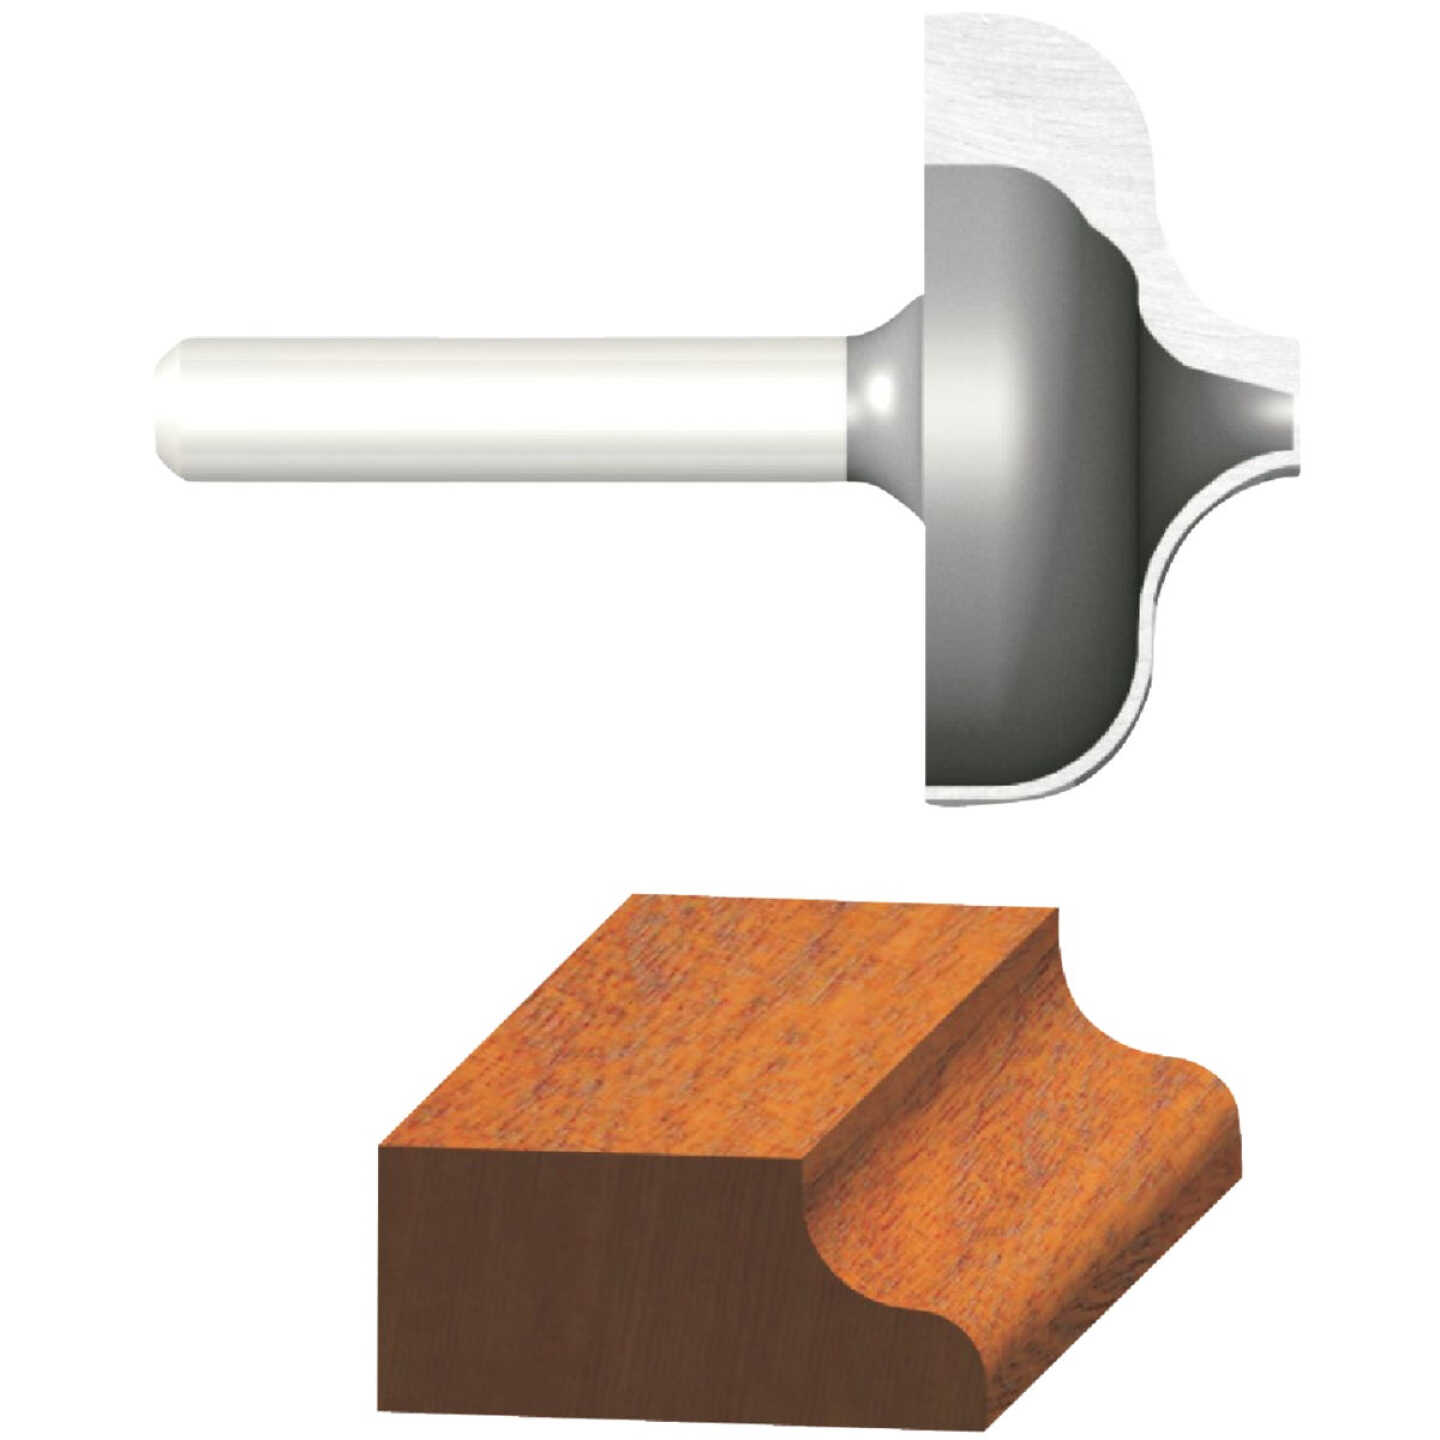 Vermont American Ogee Carbide Tip 1/4 In. Ogee Bit Image 1